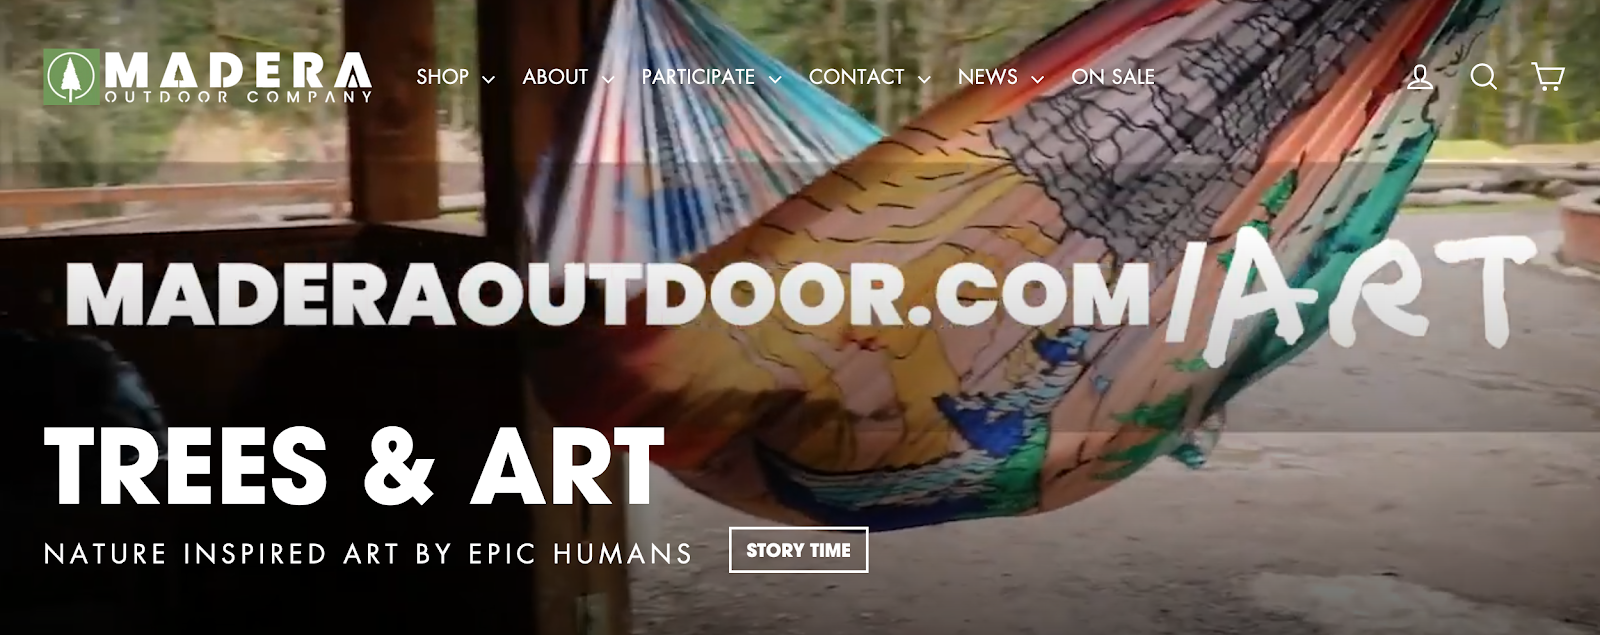 Combining Art with Nature Living | Madera Outdoor Company